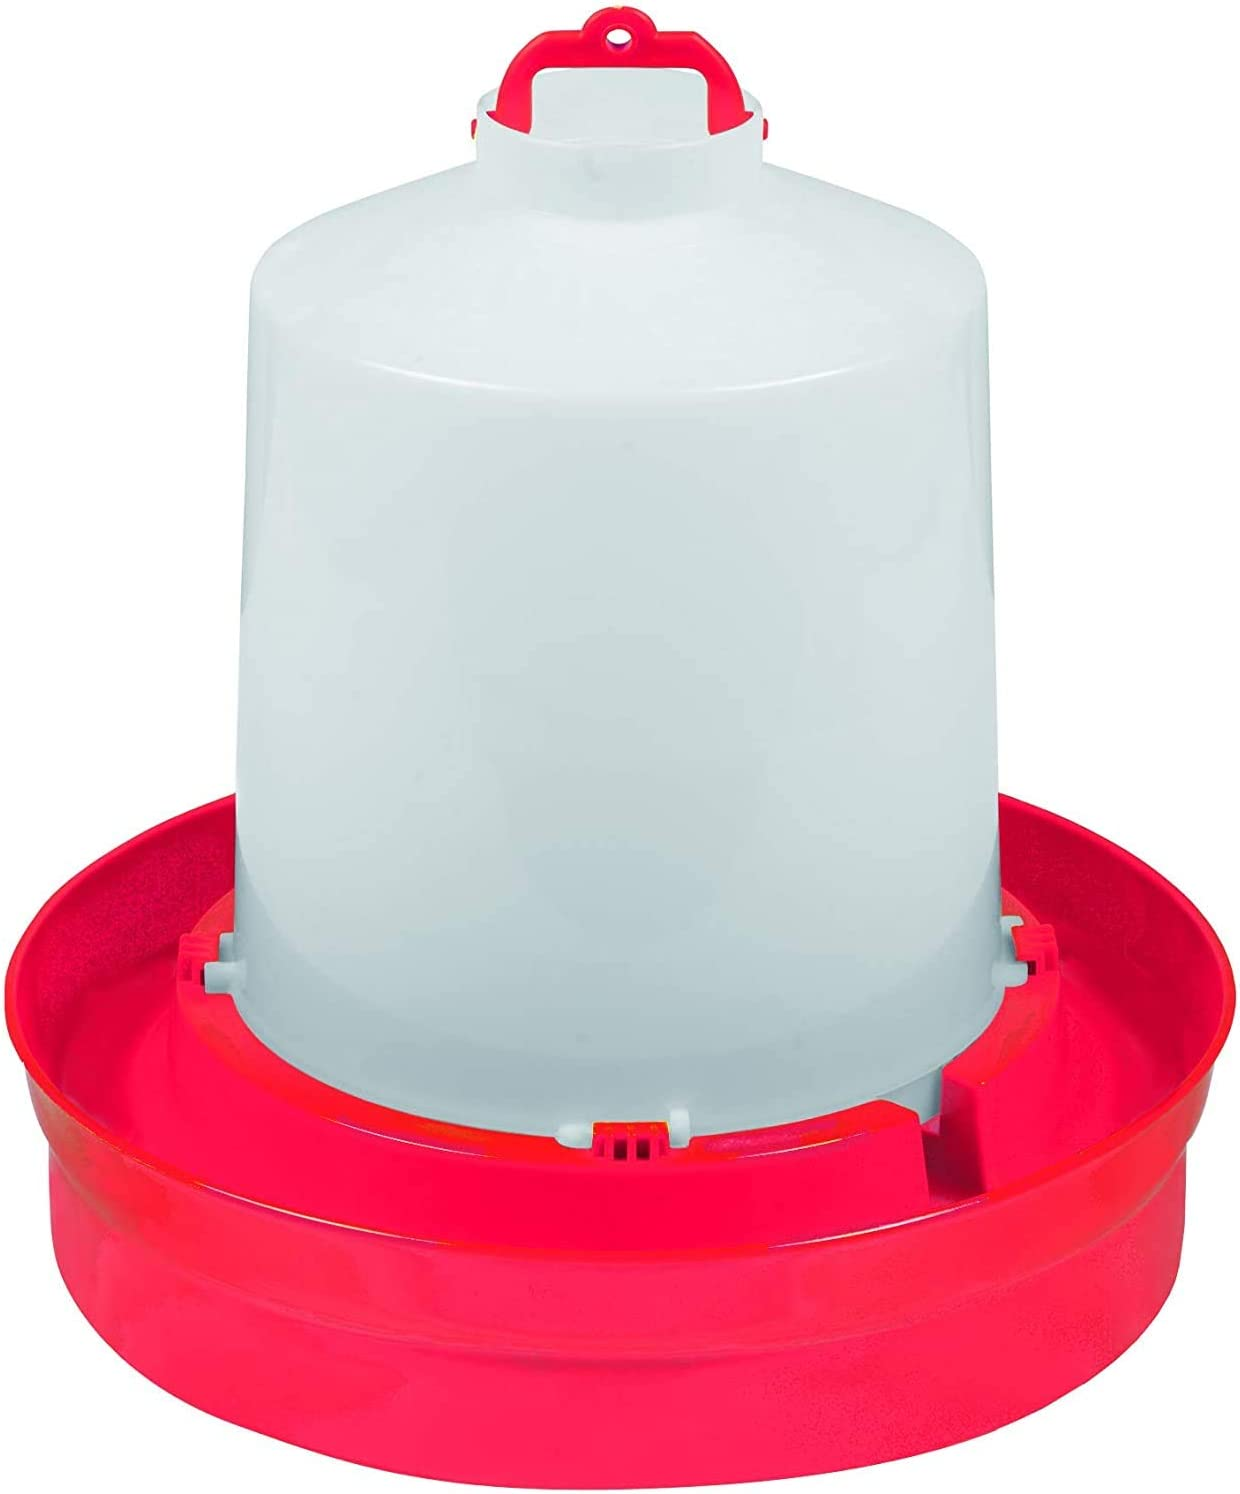 2 Gallon 2 Pack Red Little Giant DBW2 Deep Base Automatic Poultry Waterer Dispenser for Chickens /& Birds